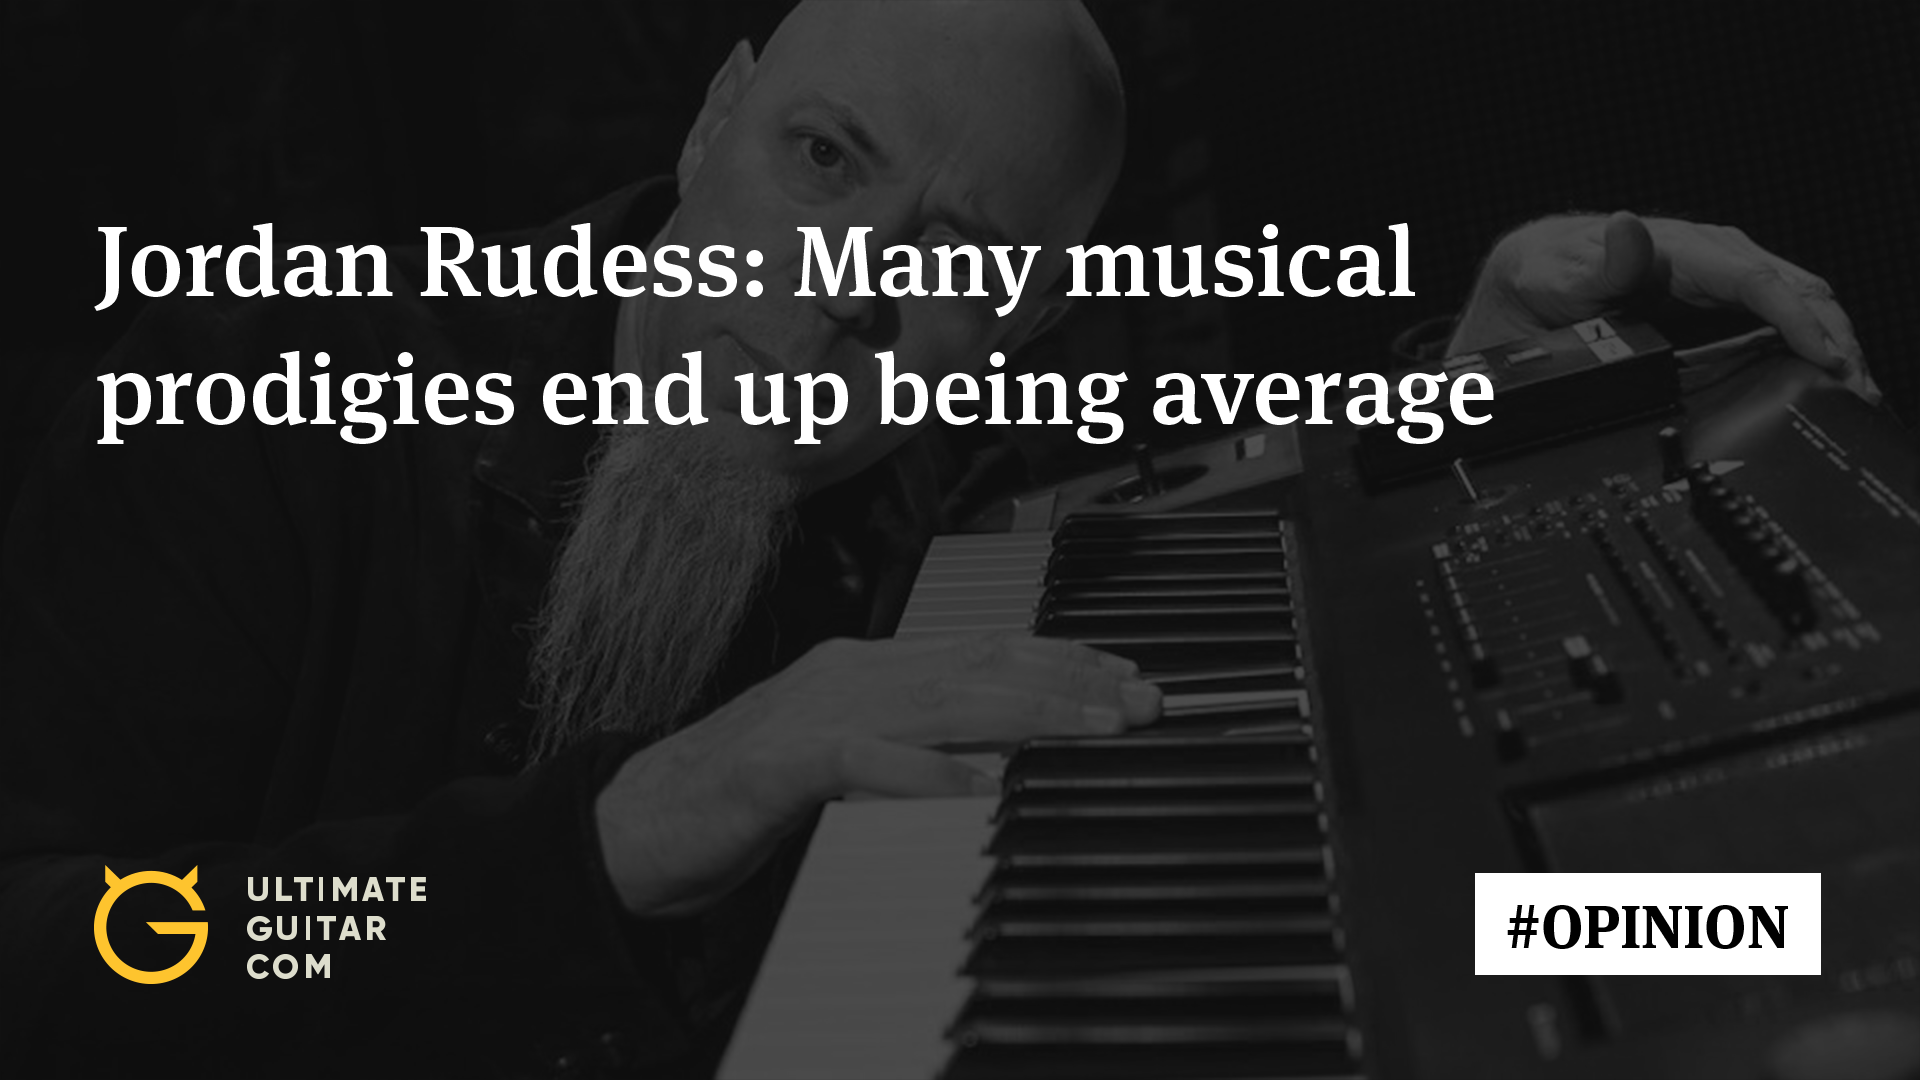 Dream theaters rudess many musical prodigies end up being dream theaters rudess many musical prodigies end up being average by the time they turn 15 music news ultimate guitar hexwebz Image collections